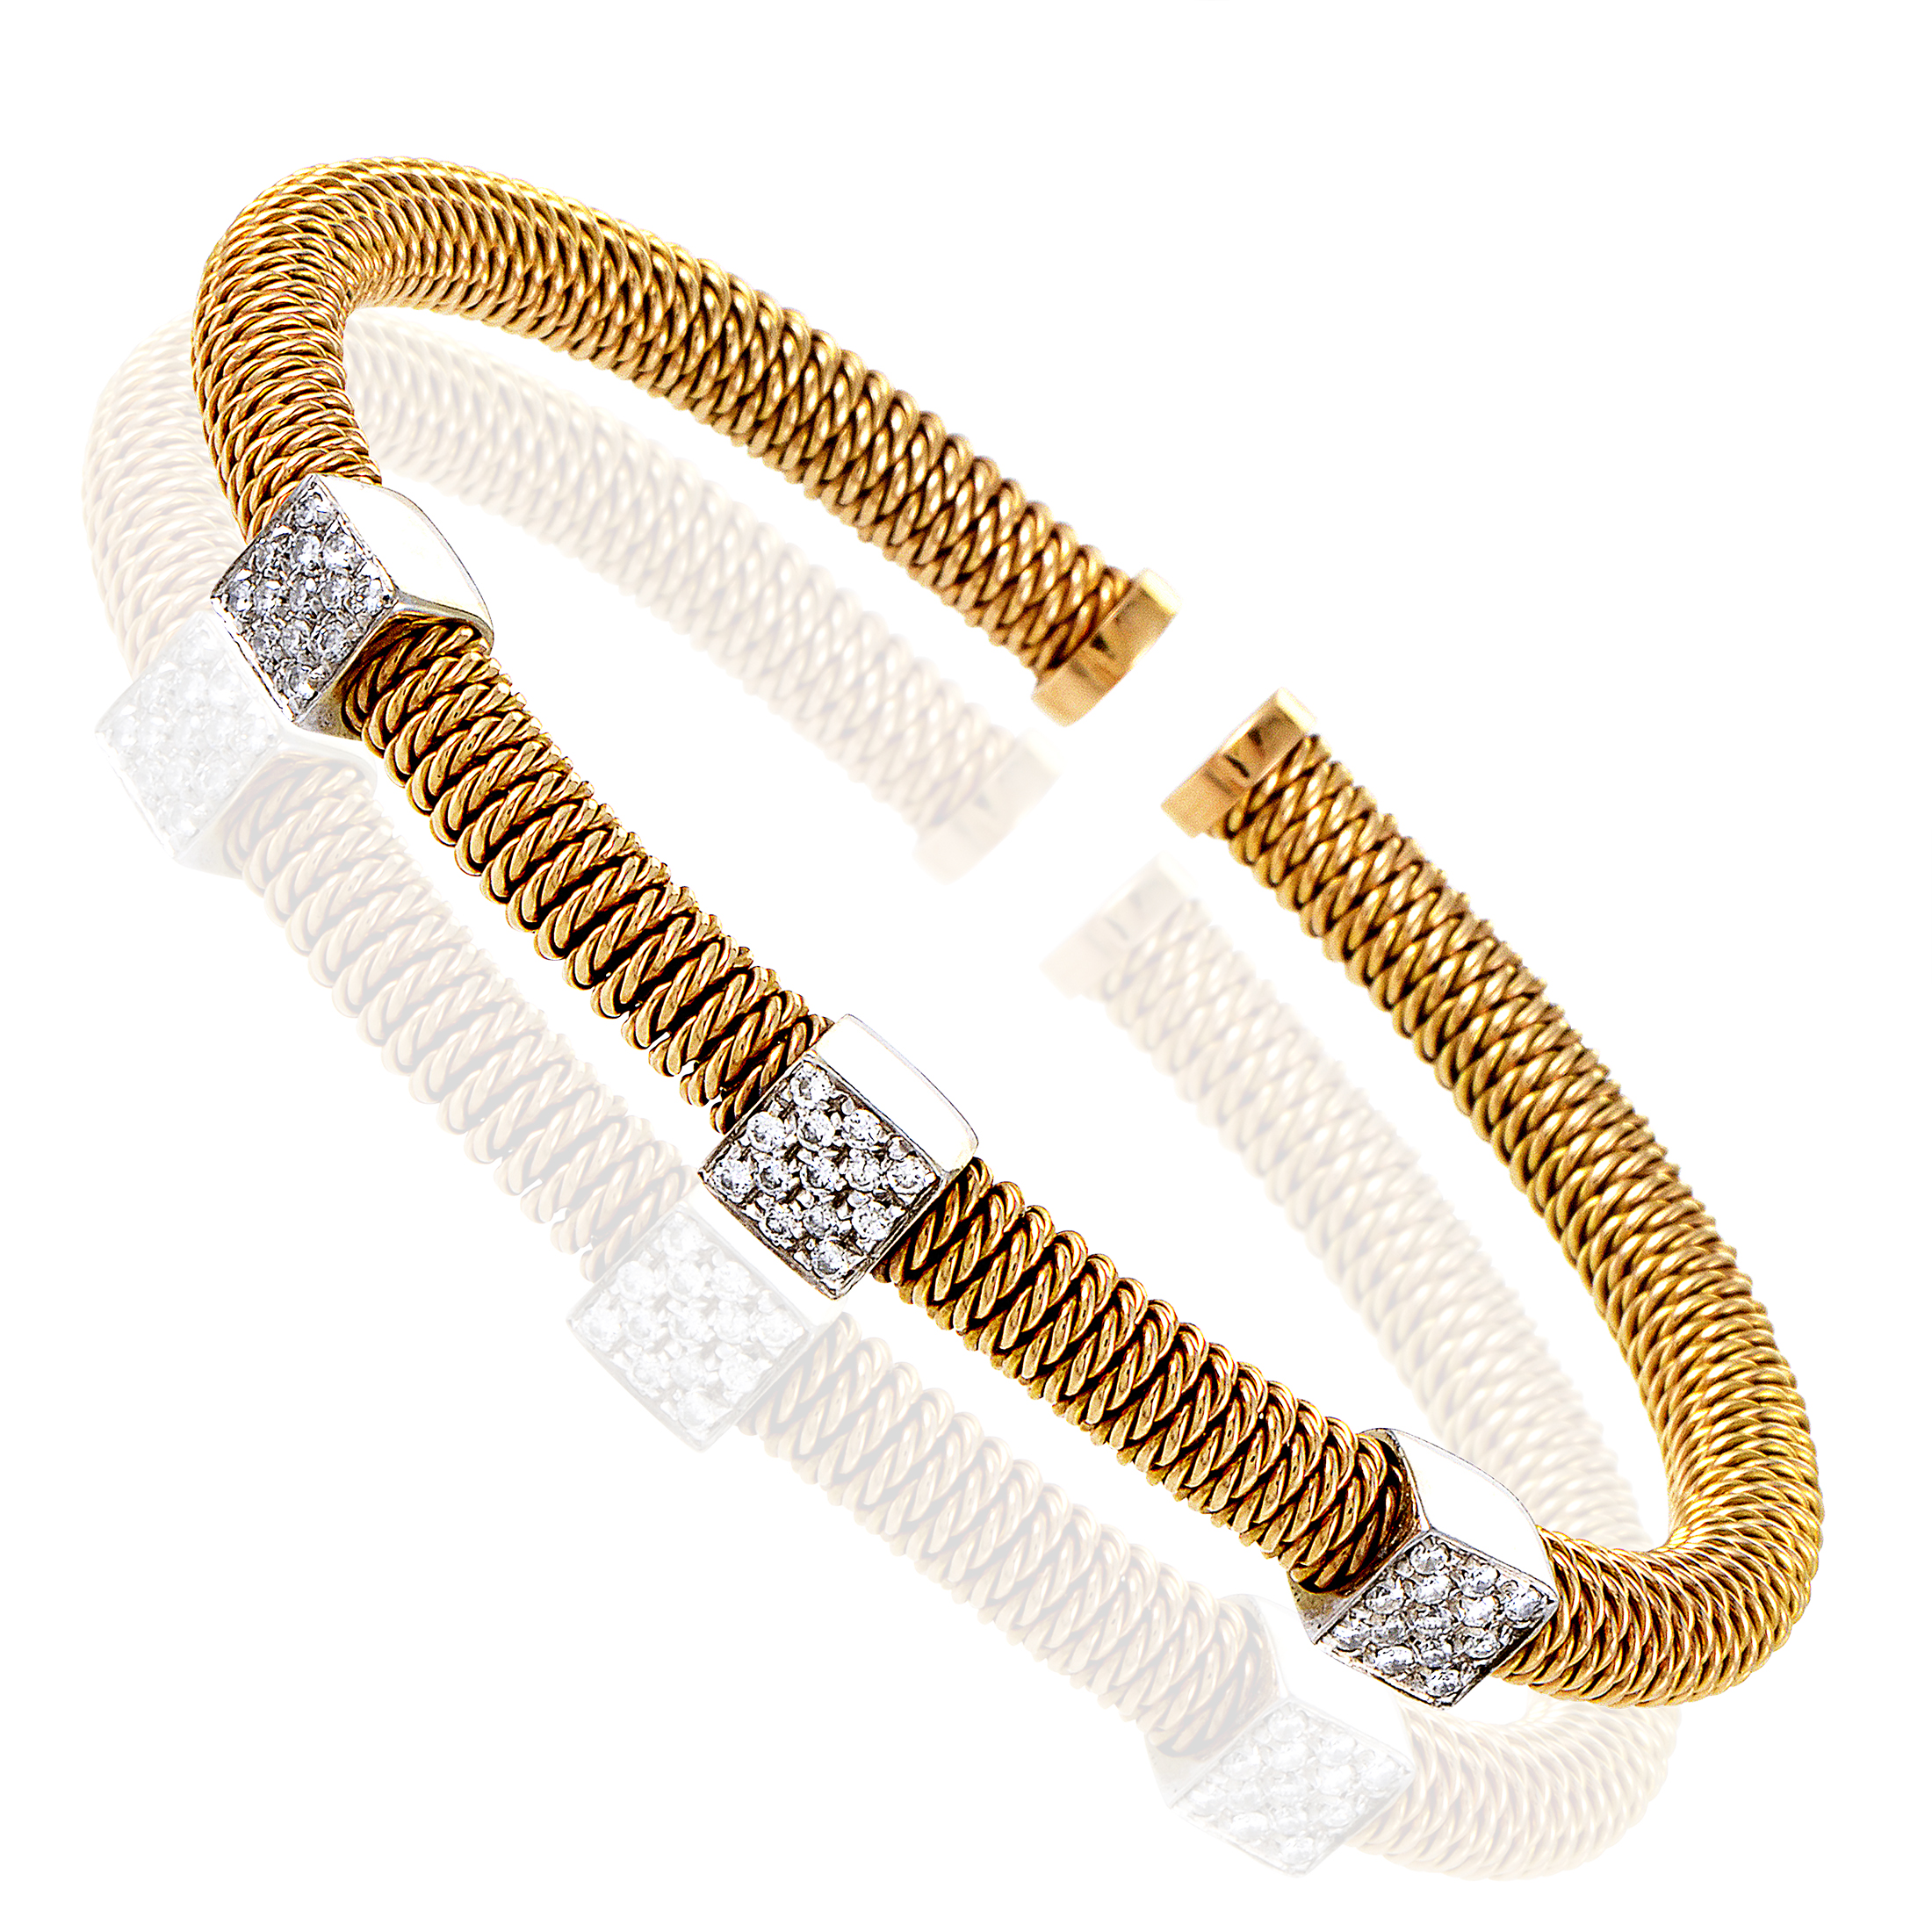 Italian Collection 18K Multi-Tone Gold Diamond Pave Bangle Bracelet